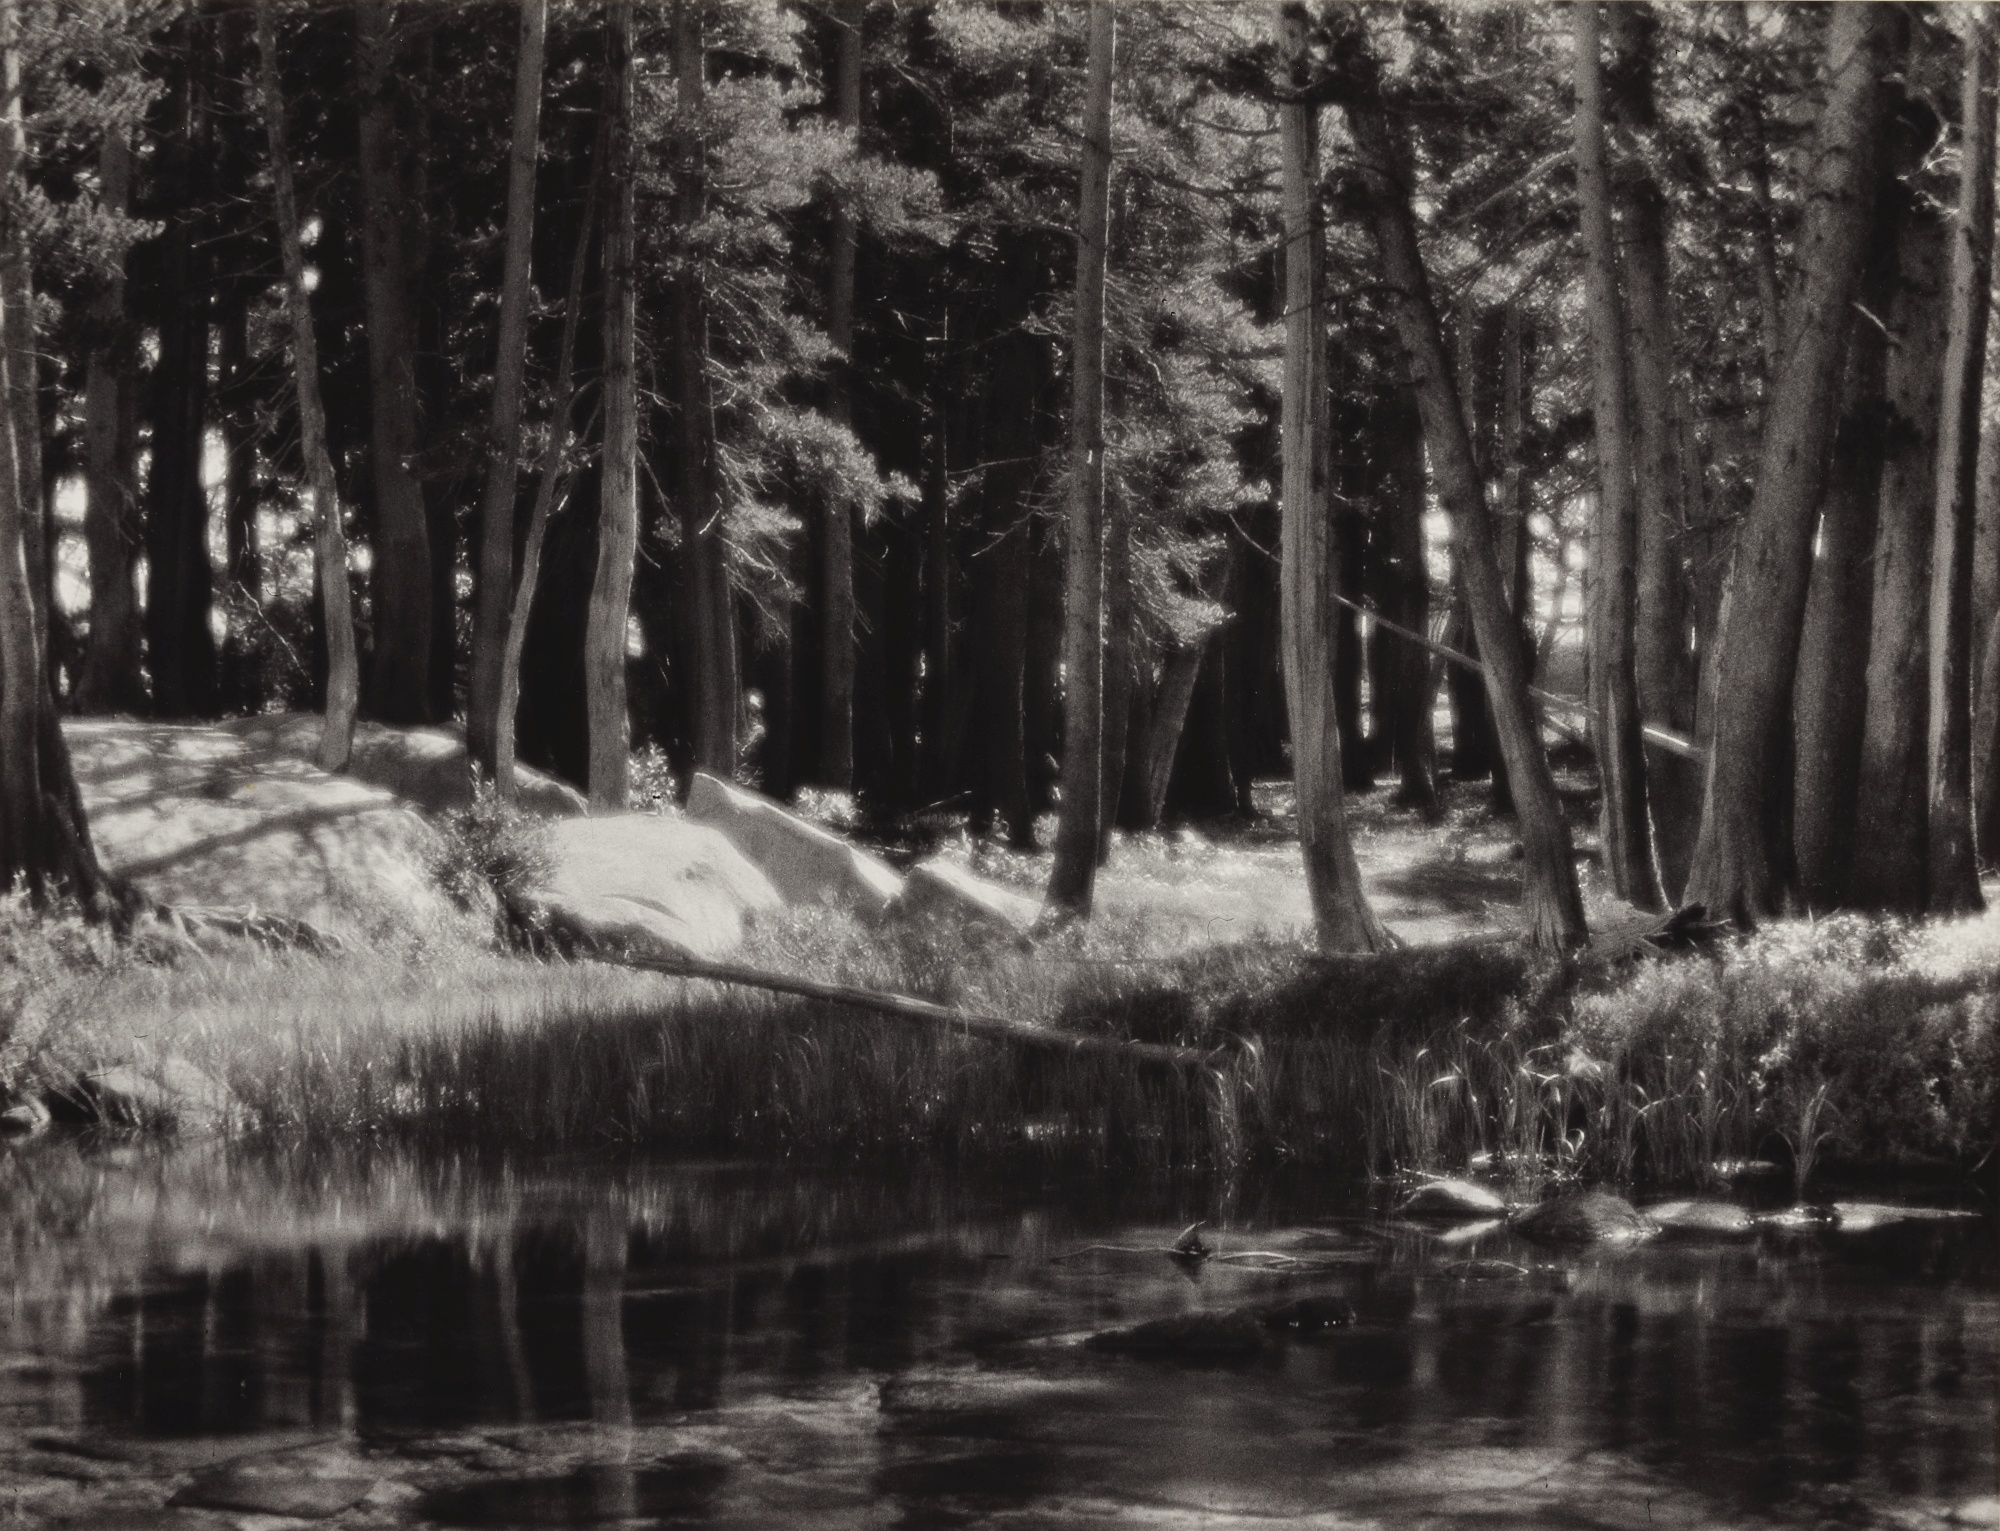 Ansel Adams-Forest And Stream, Lyell Fork Of The Merced River, Yosemite National Park, California; Sierra Nevada: The John Muir Trail (Berkeley: The Archetype Press, 1938)-1921